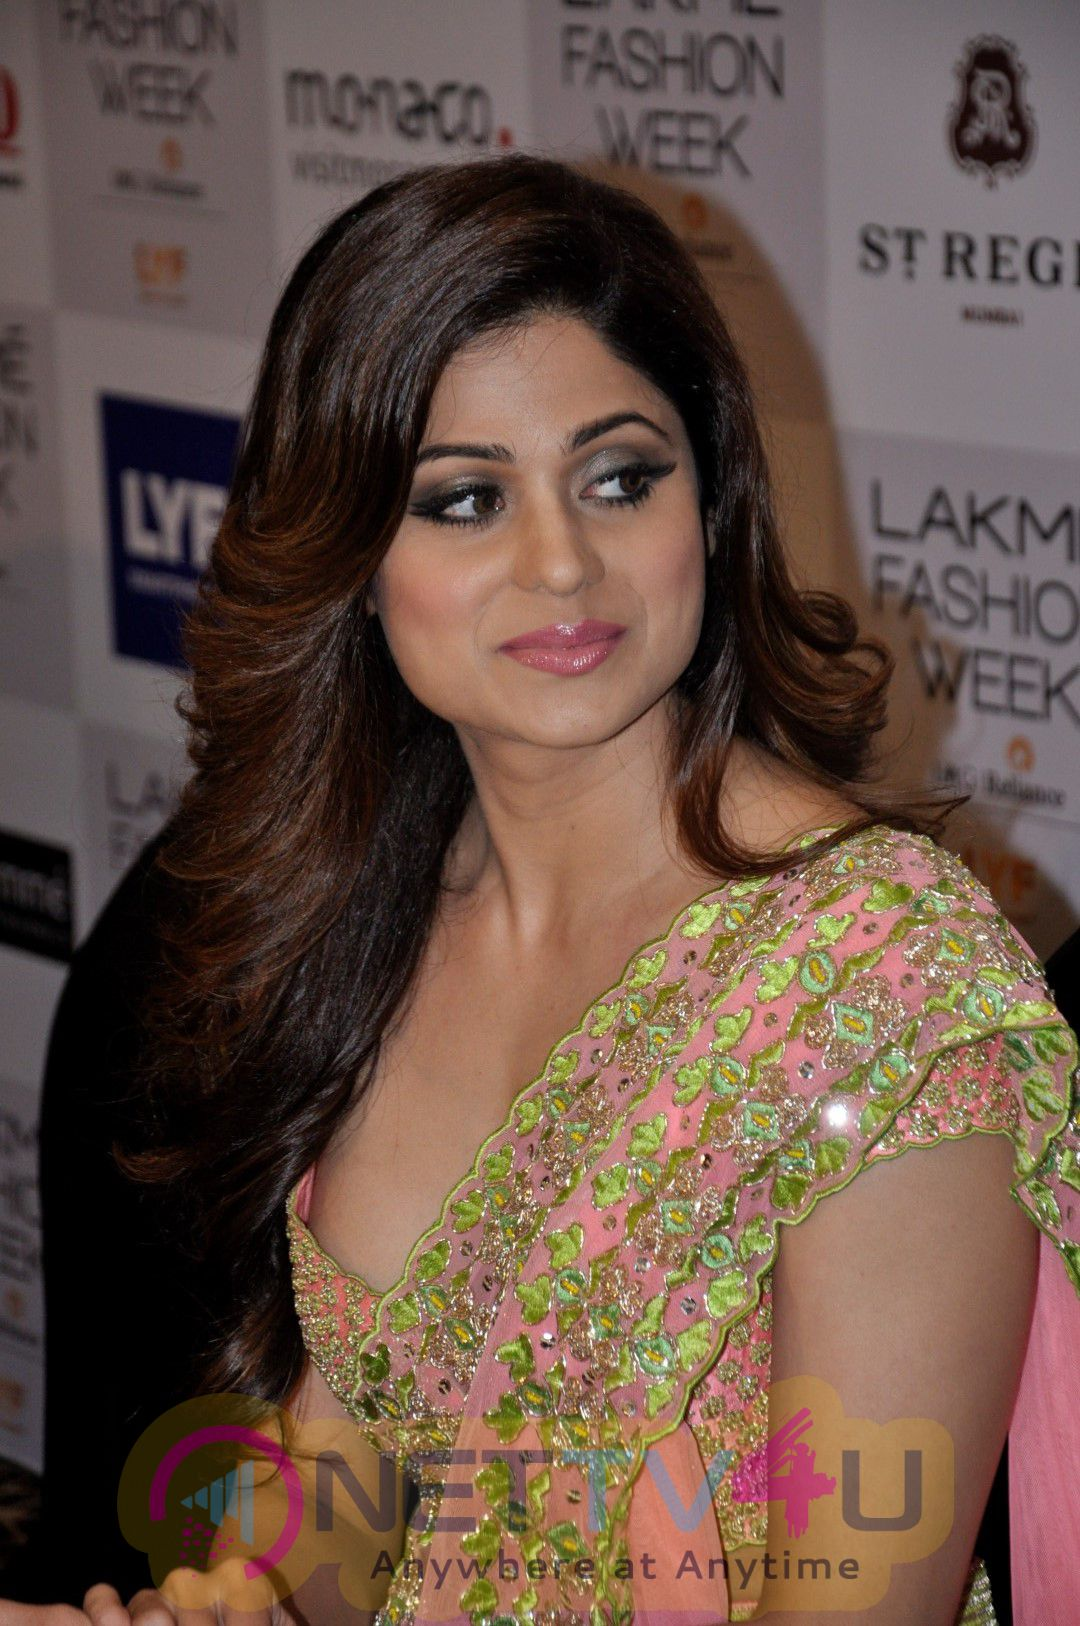 Shamita Shetty Spotted At Lakme Fashion Week Pics